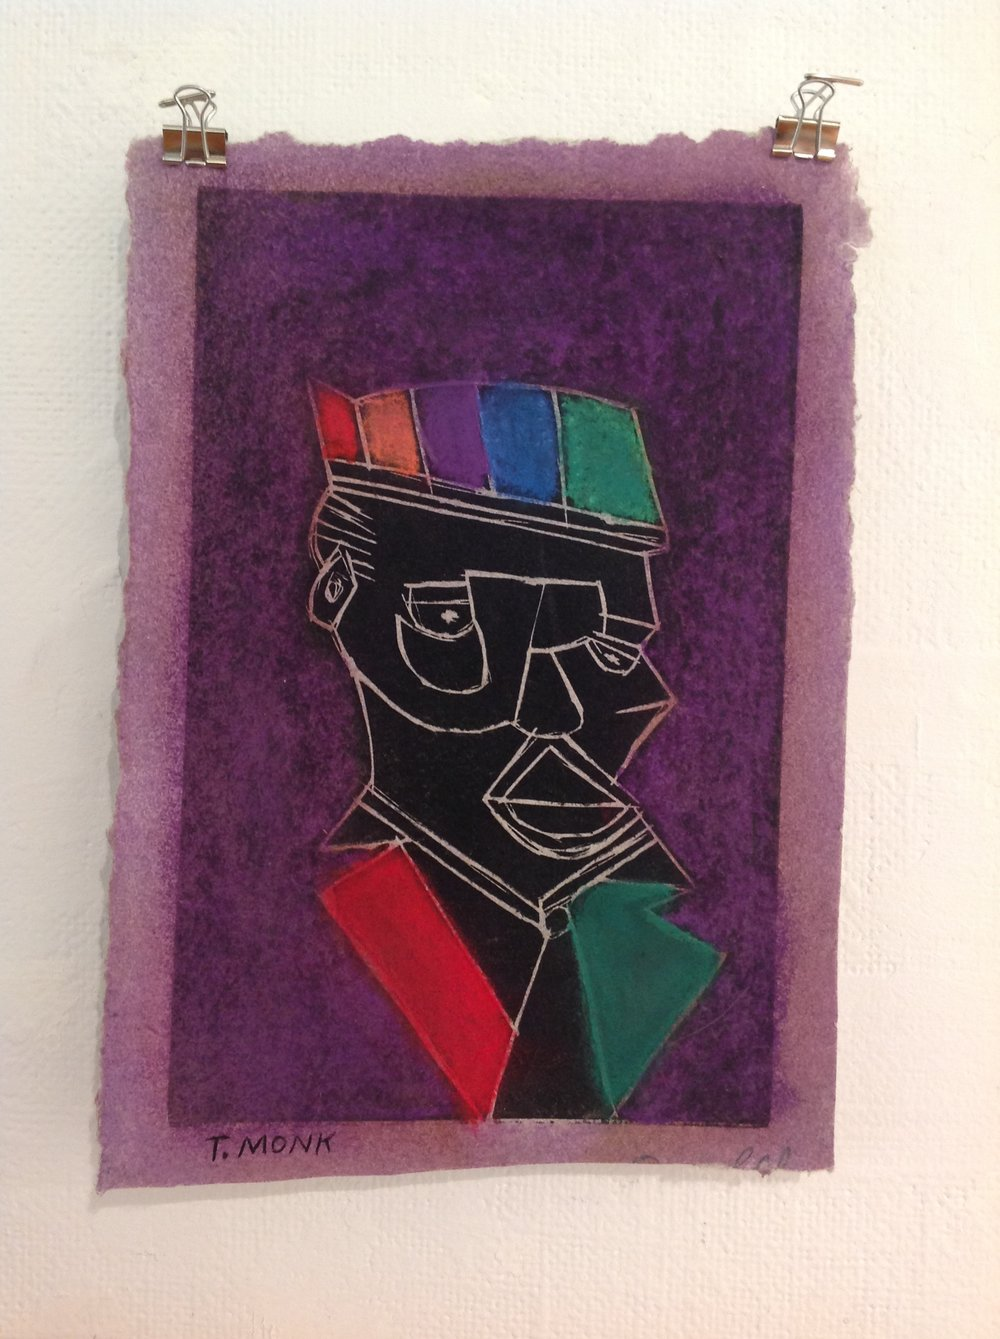 """T. Monk""    Jim Fallon,  2017    Acrylic, Linocut on handmade paper from military uniforms"